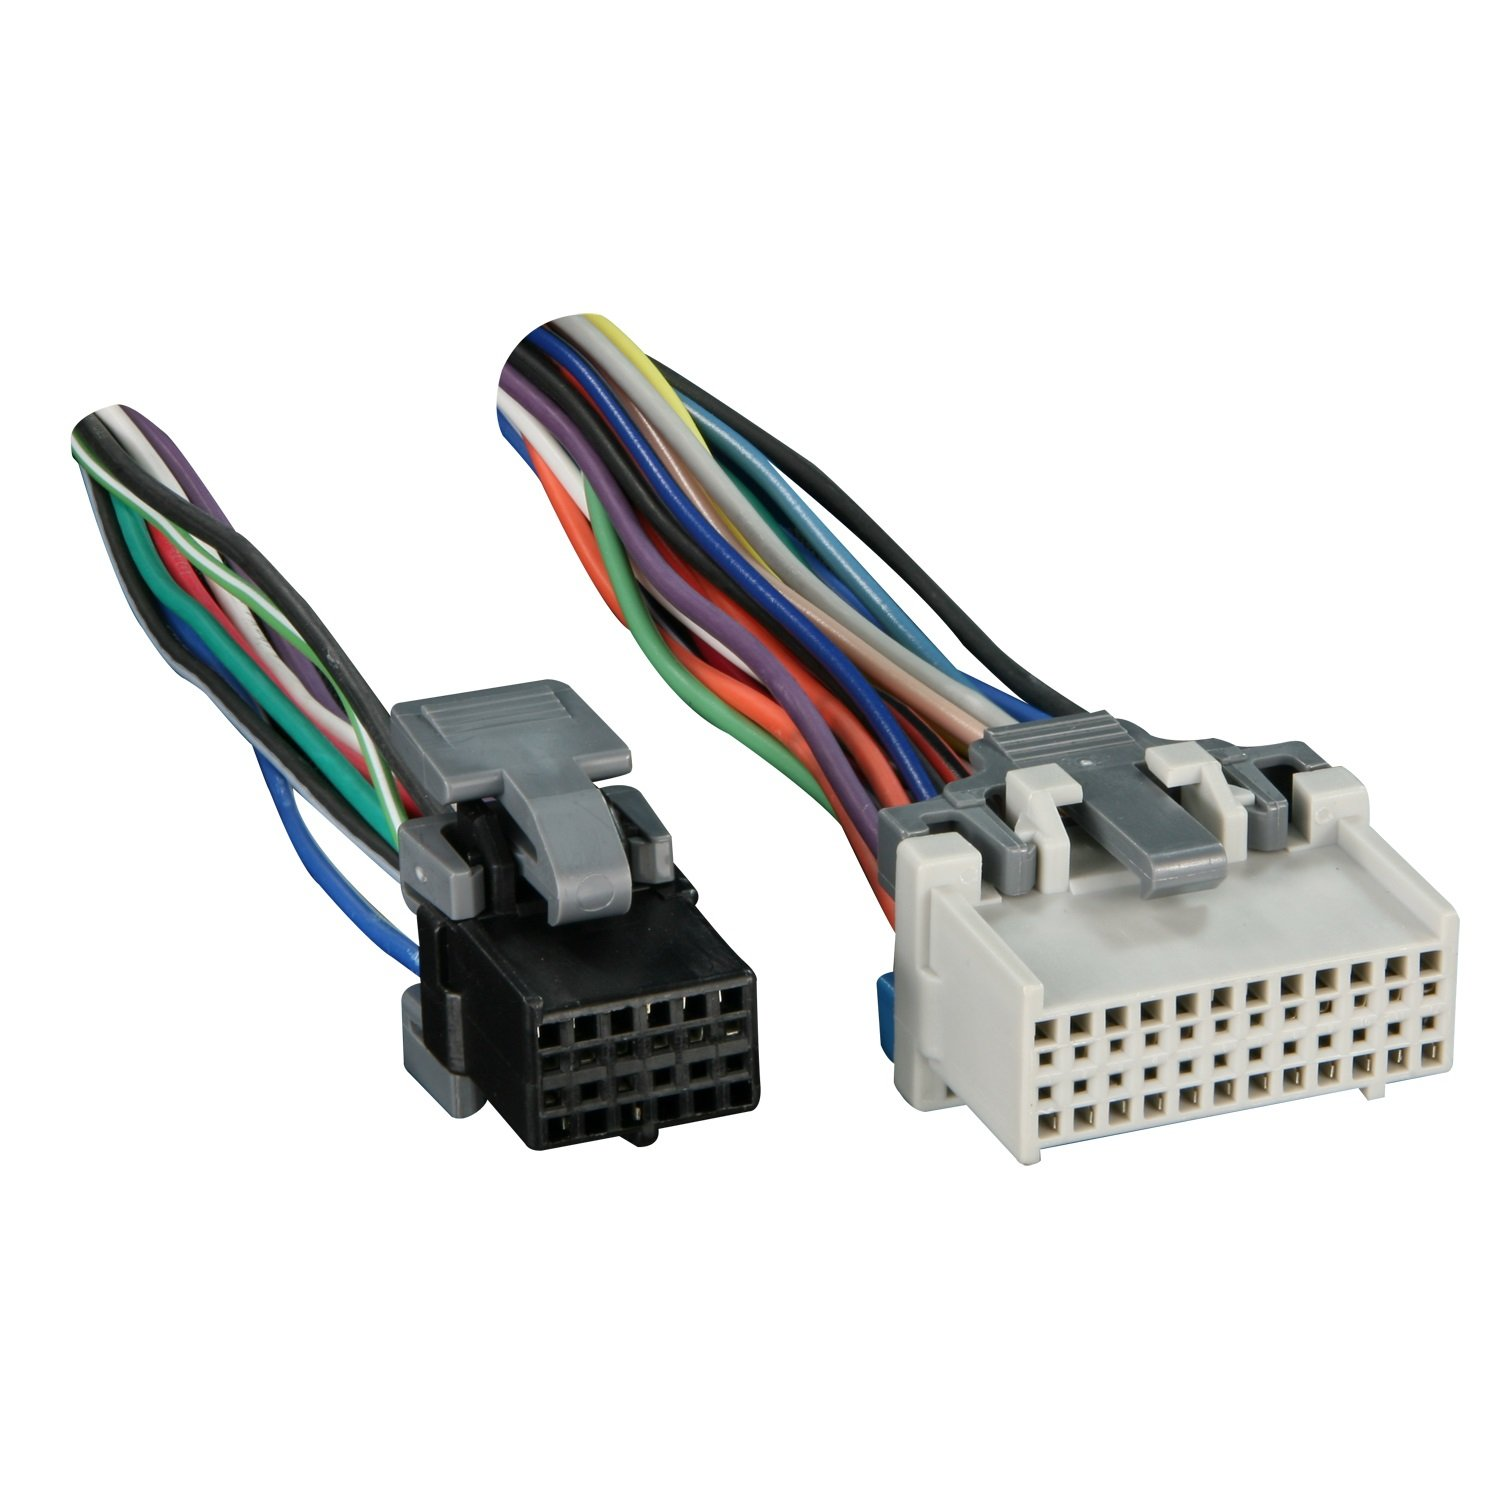 711log4bdML._SL1500_ amazon com metra turbowires 71 2003 1 wiring harness car electronics  at cita.asia